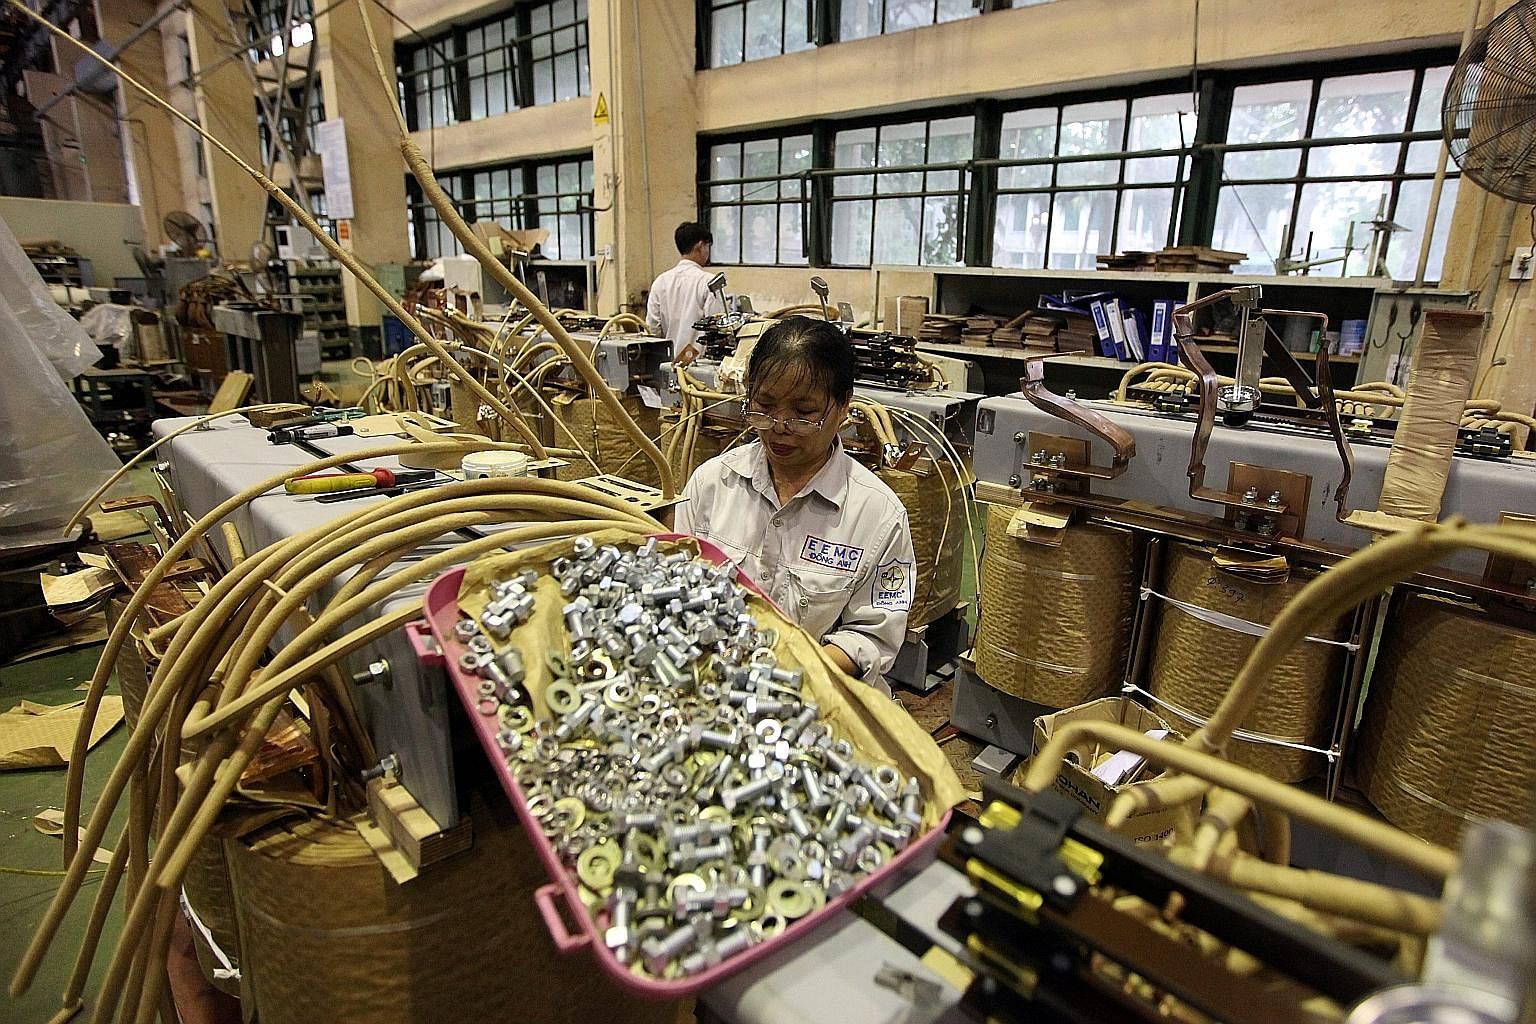 Workers in a transformer manufacturing workshop in Hanoi. Vietnam's manufacturing and export sector has traditionally focused on the US and European markets.